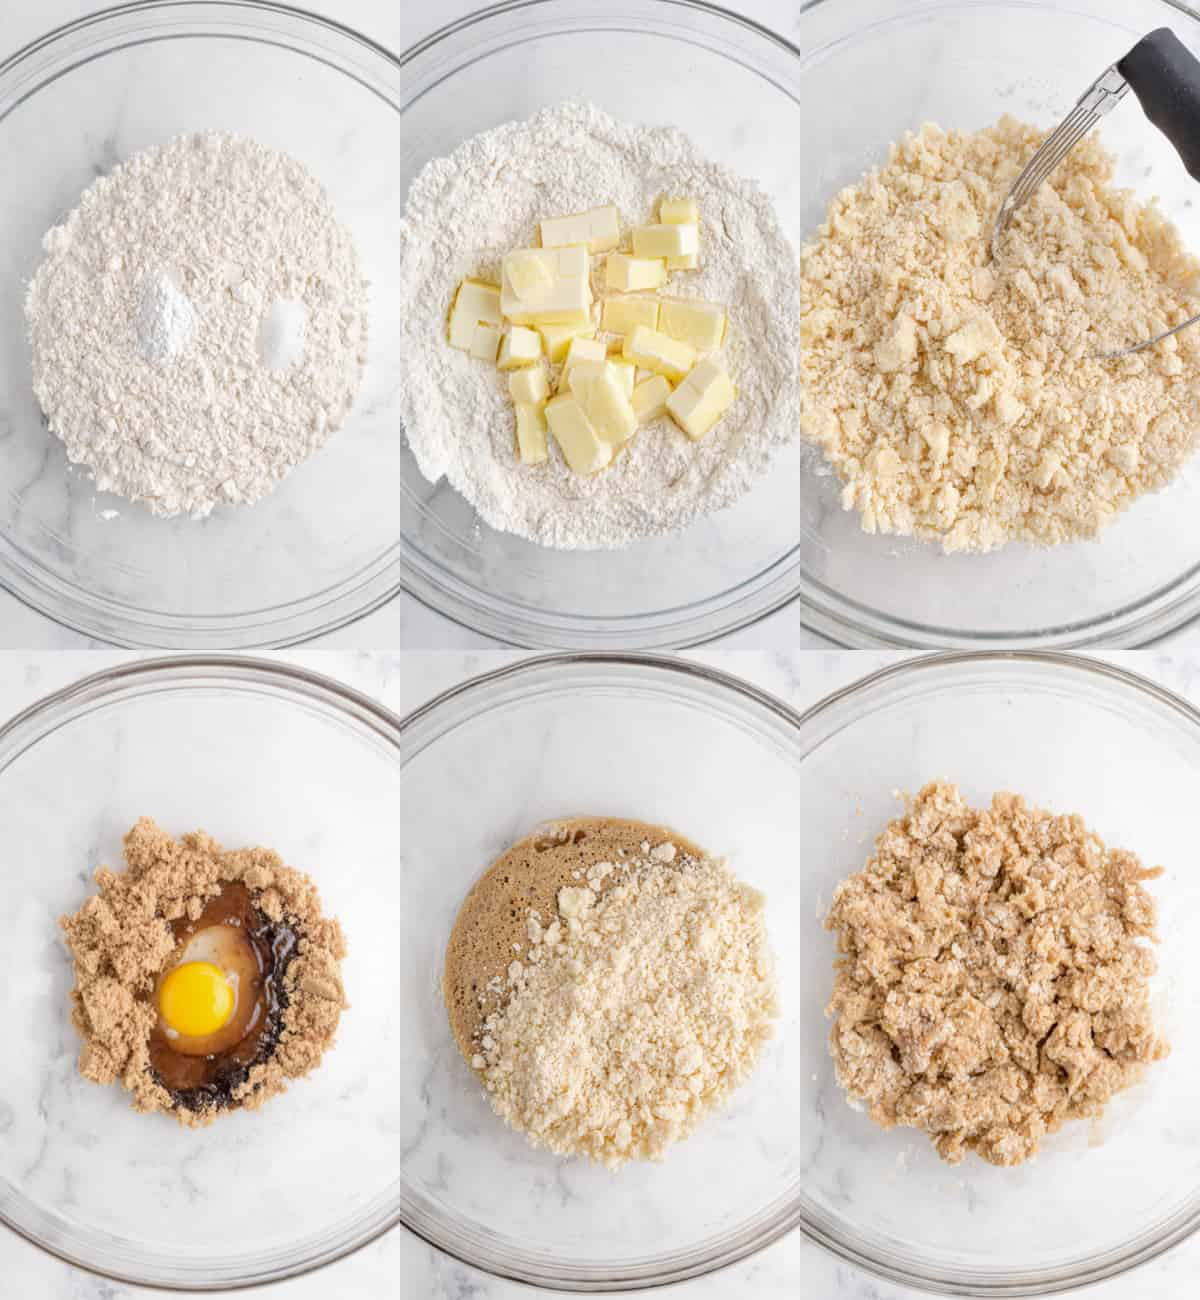 mixing together ingredients for bars in a bowl